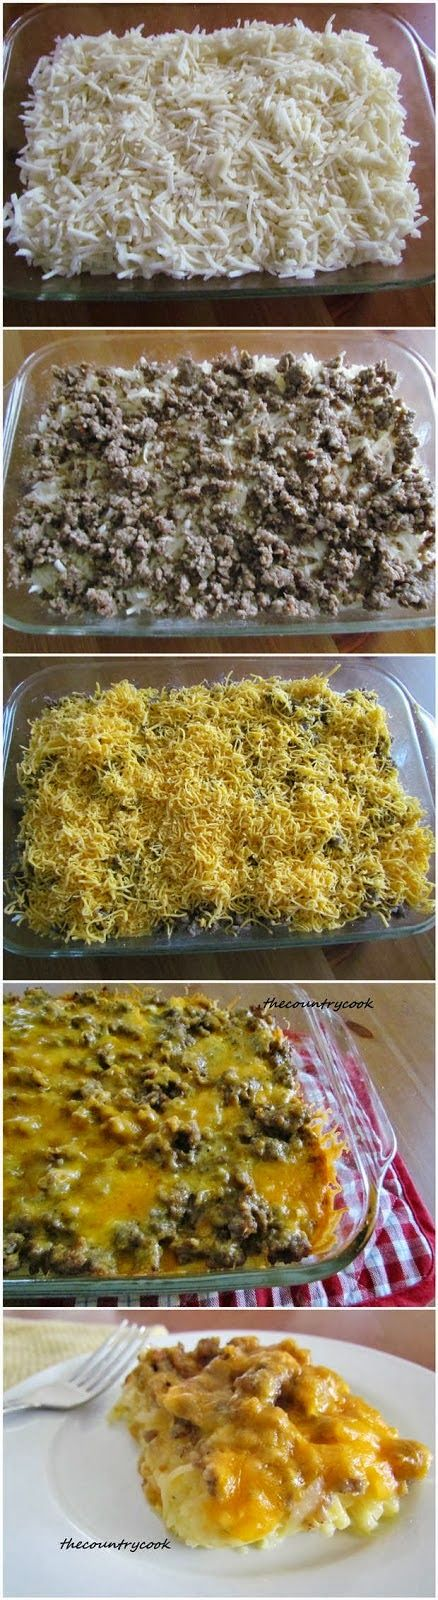 Sausage Hashbrown Breakfast Casserole - toprecipecloud